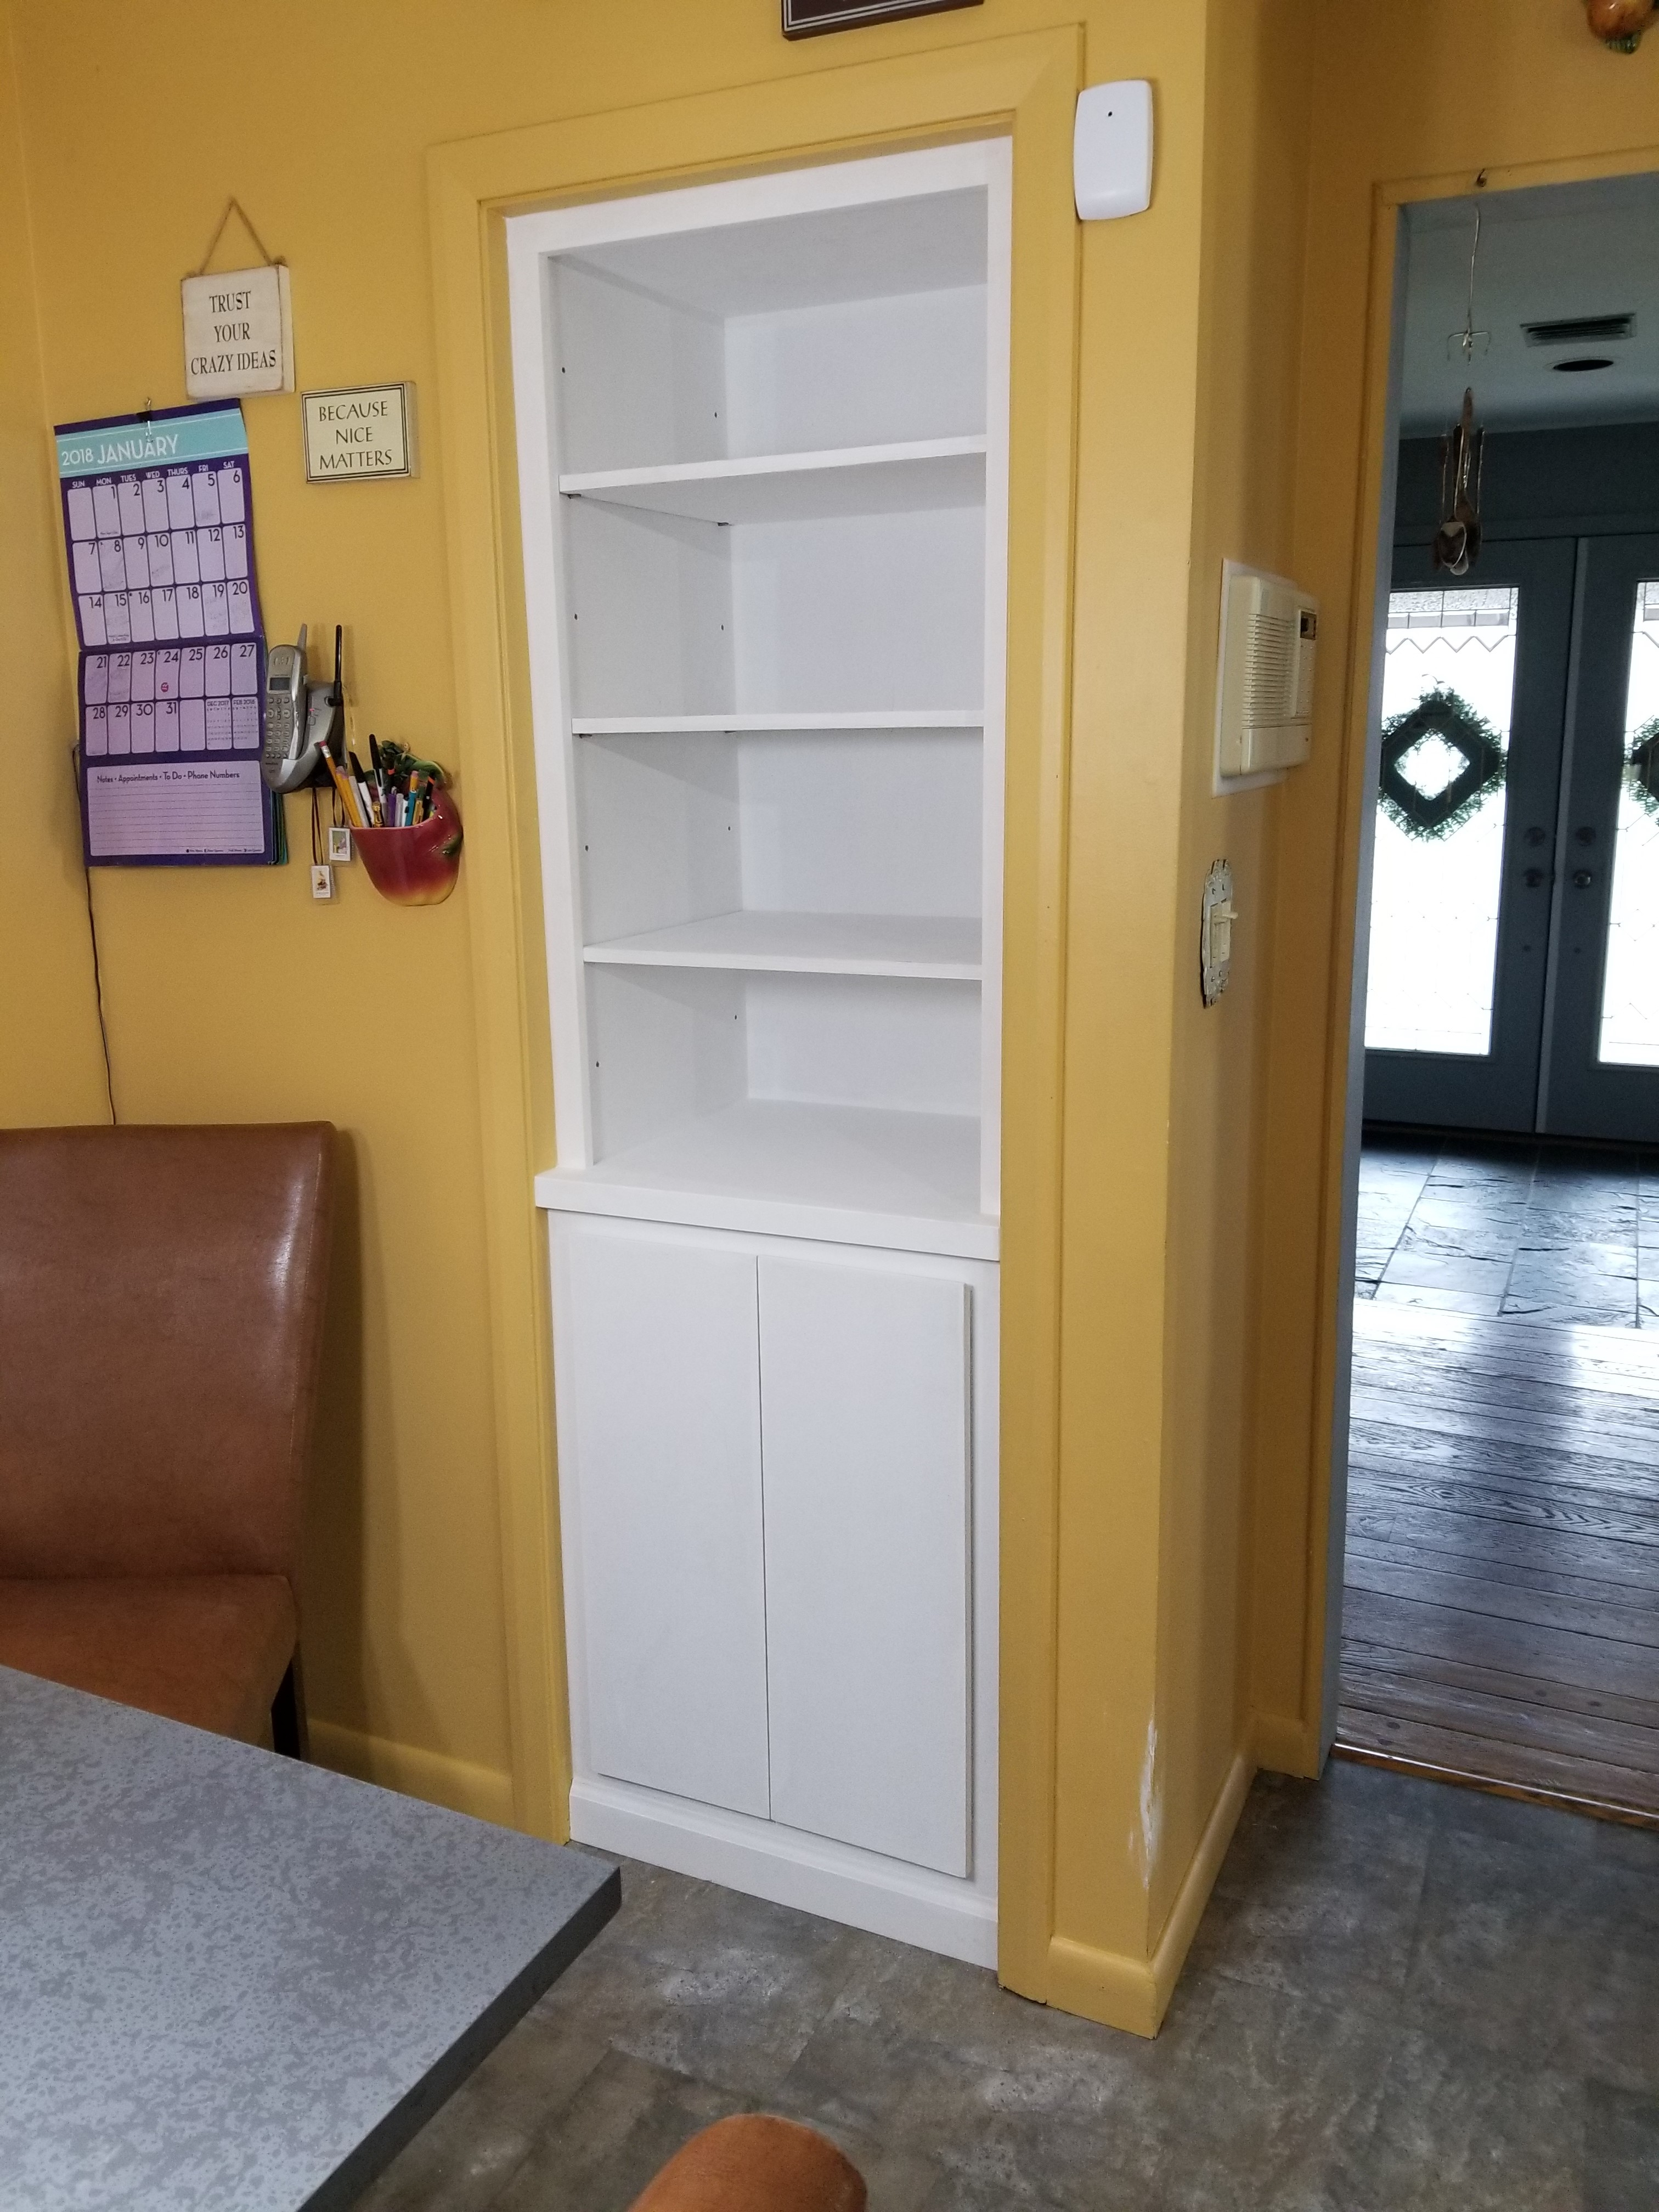 Paint Grade Storage Built Into Closet 1